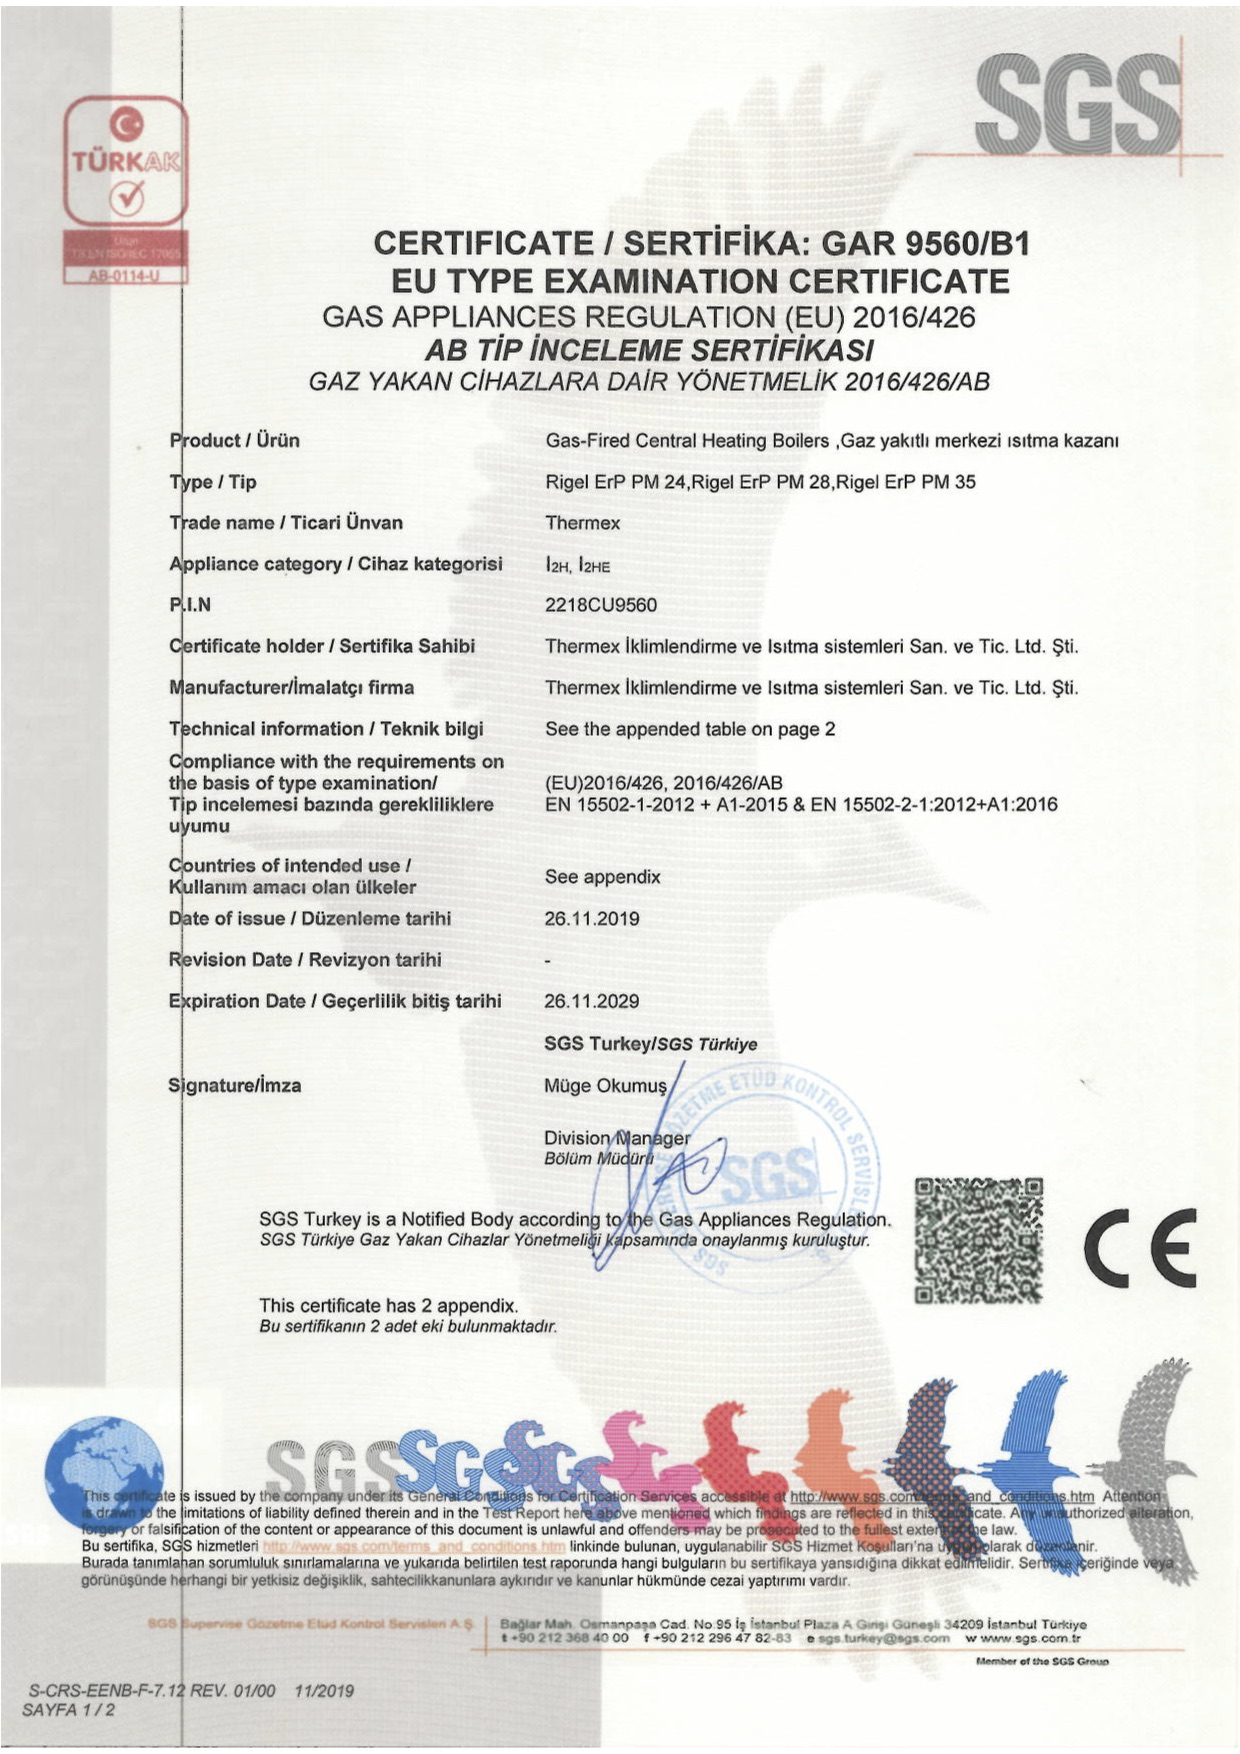 S-CRS-EE-F-31-Certificate-REV0200-thermex-RIGEL